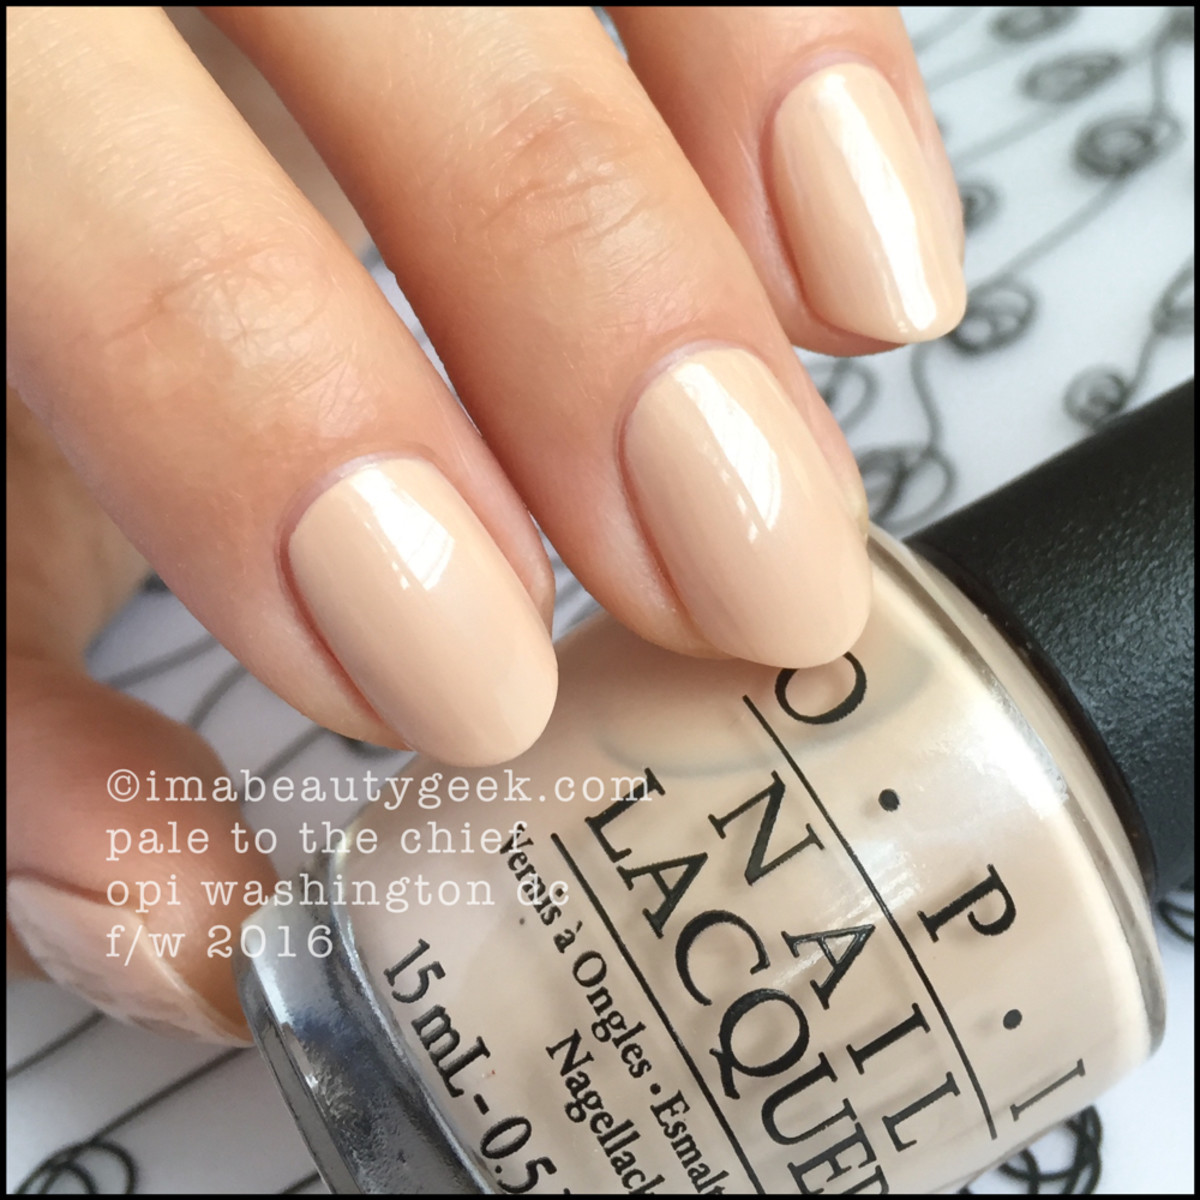 OPI Pale to the Chief_OPI Washington DC 2016 Swatches Review